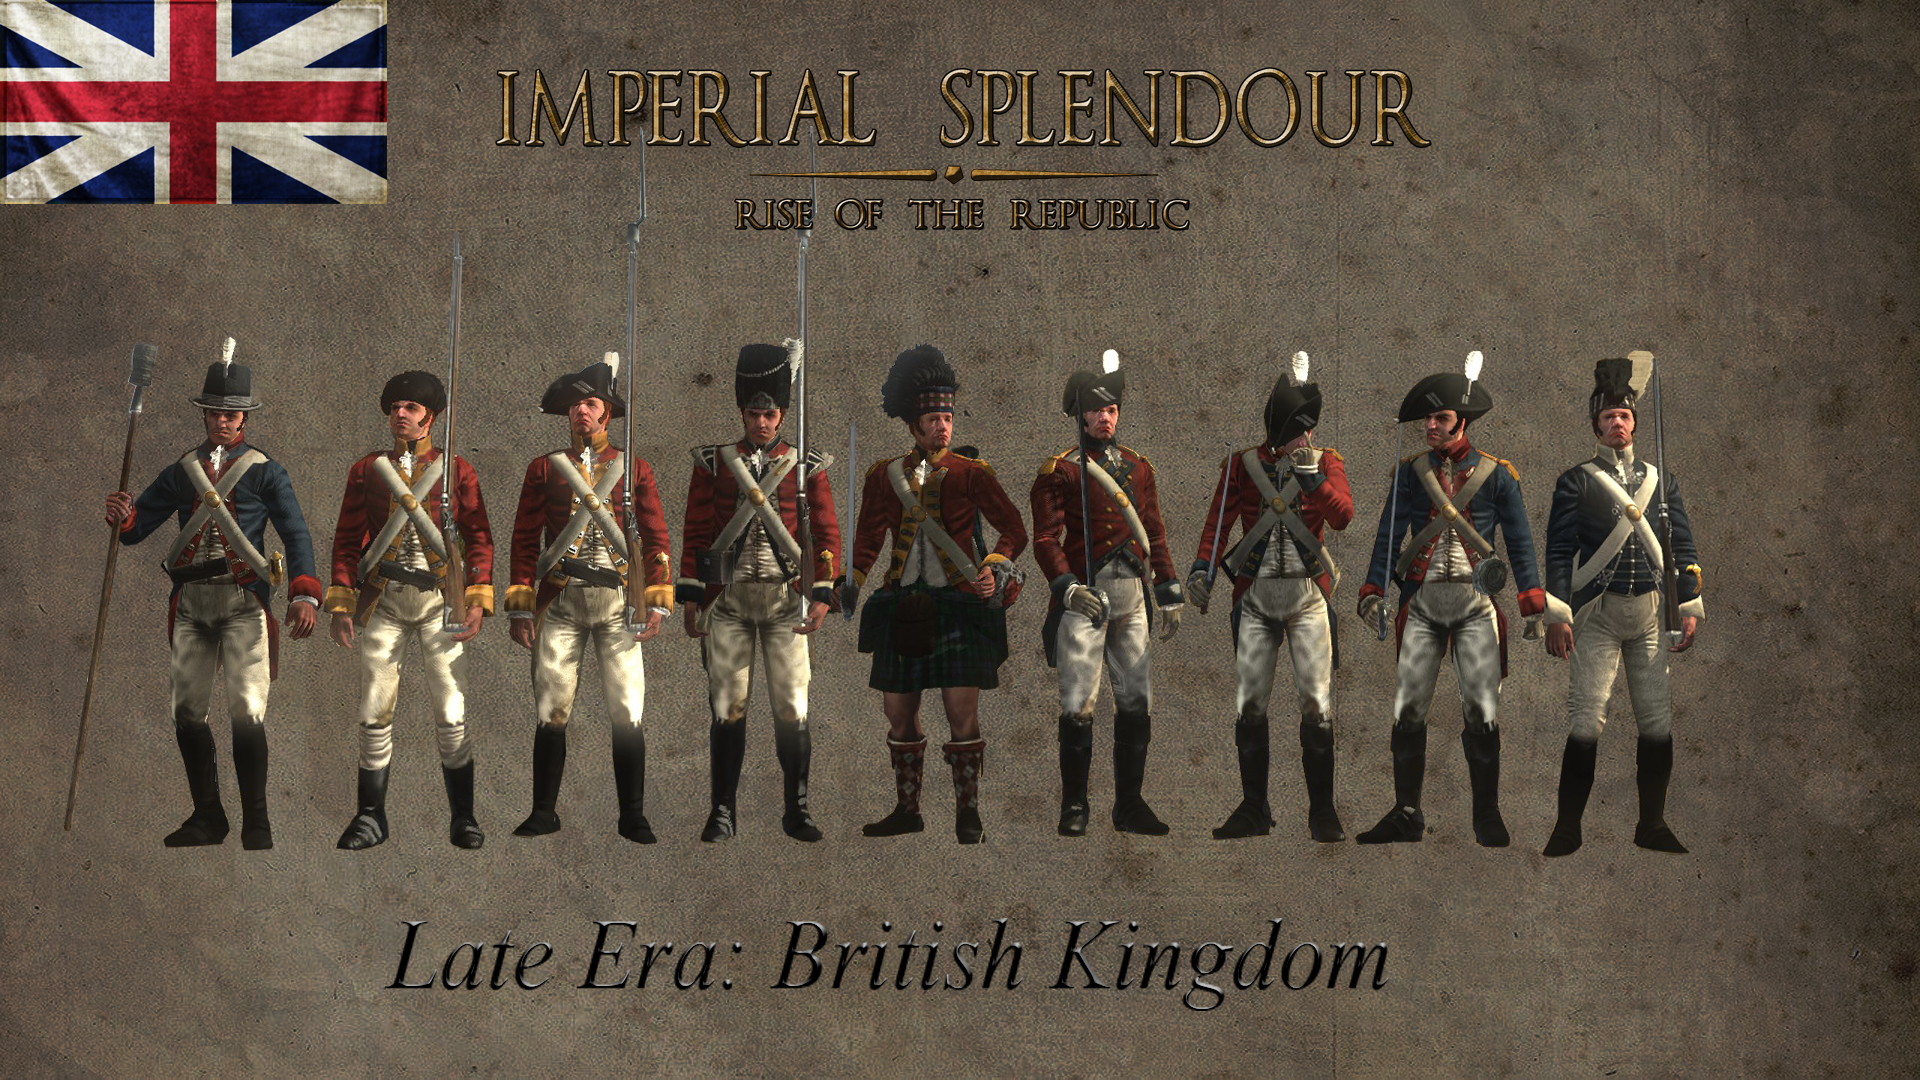 IS: Rise of the Republic Preview news - Imperial Splendour